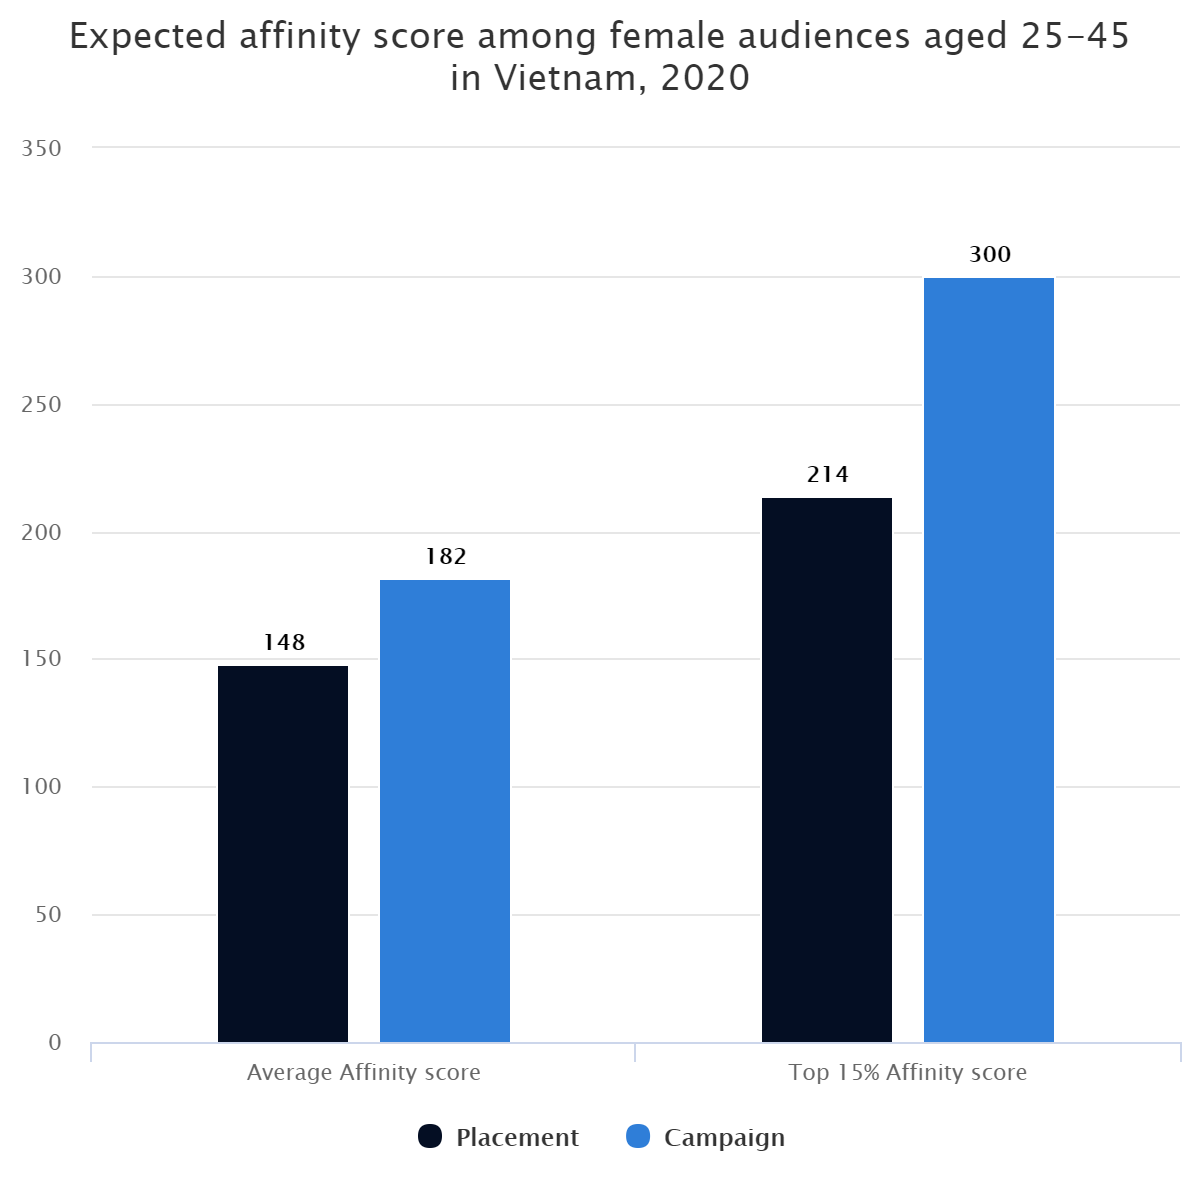 Expected affinity score among female audiences aged 25-45 in Vietnam, 2020